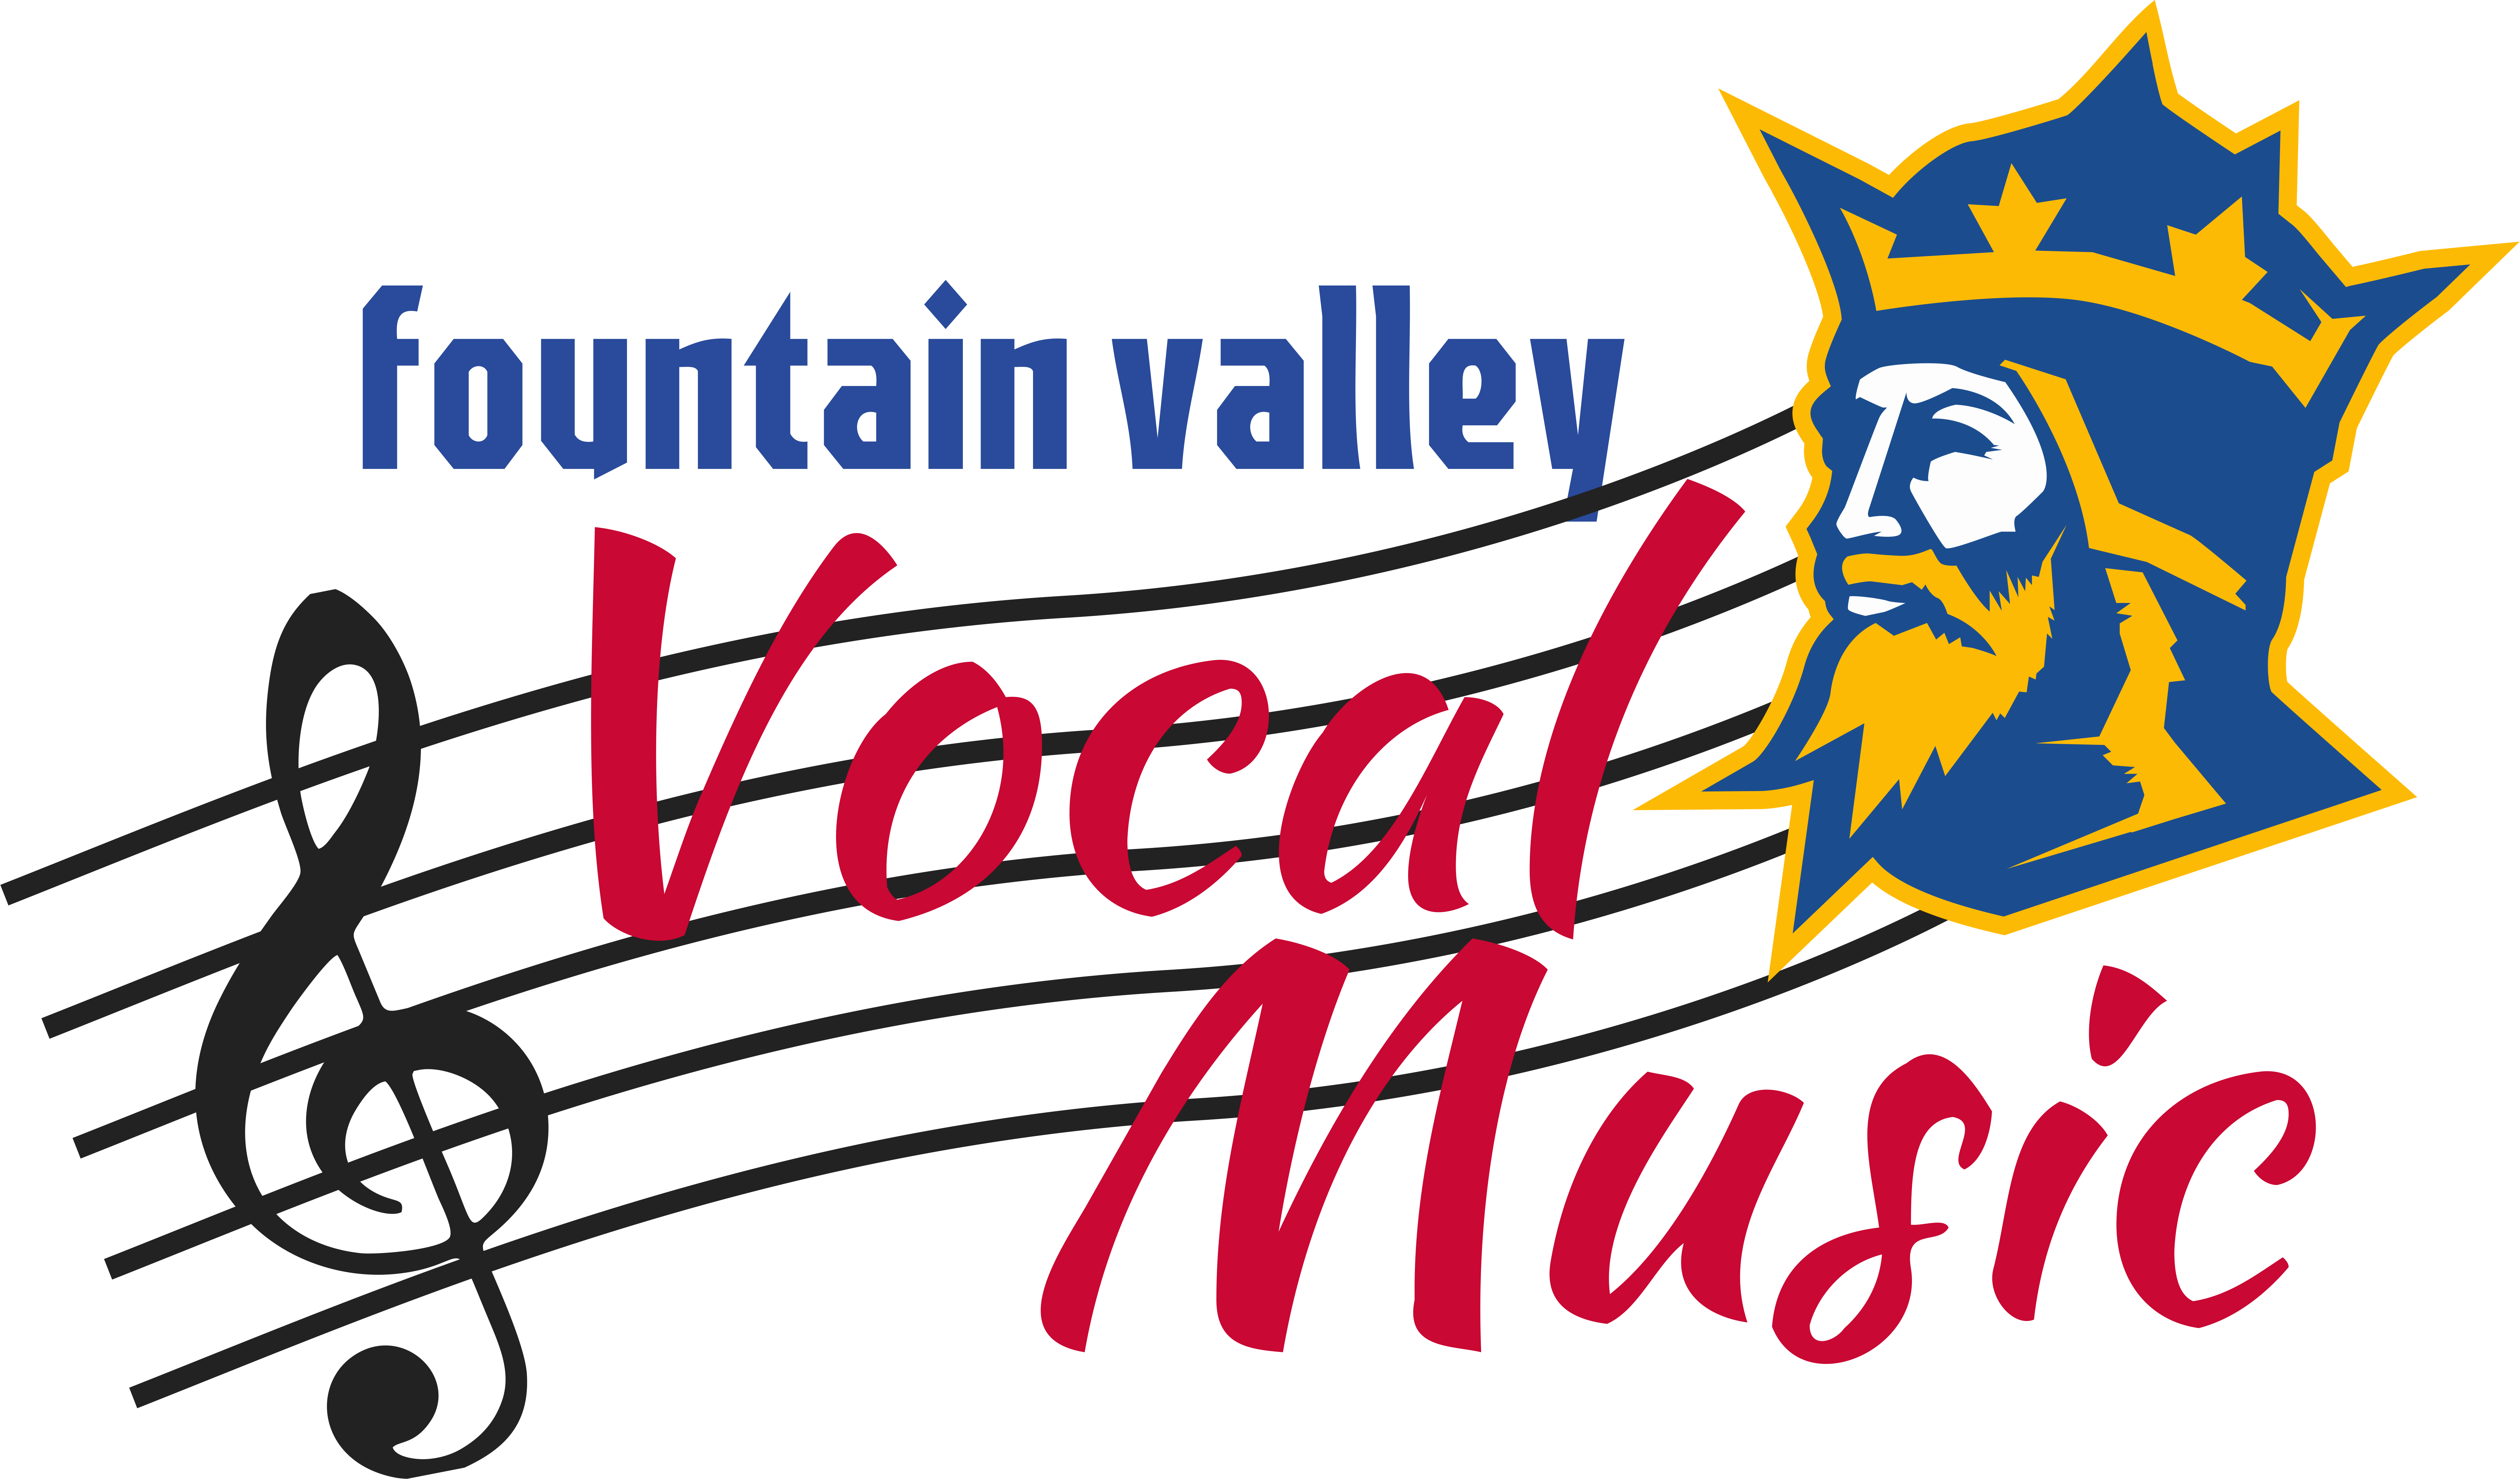 Fvhs Vocal Music - Fountain Valley High School Vocal Music With Regard To Fountain Valley High School Calendar